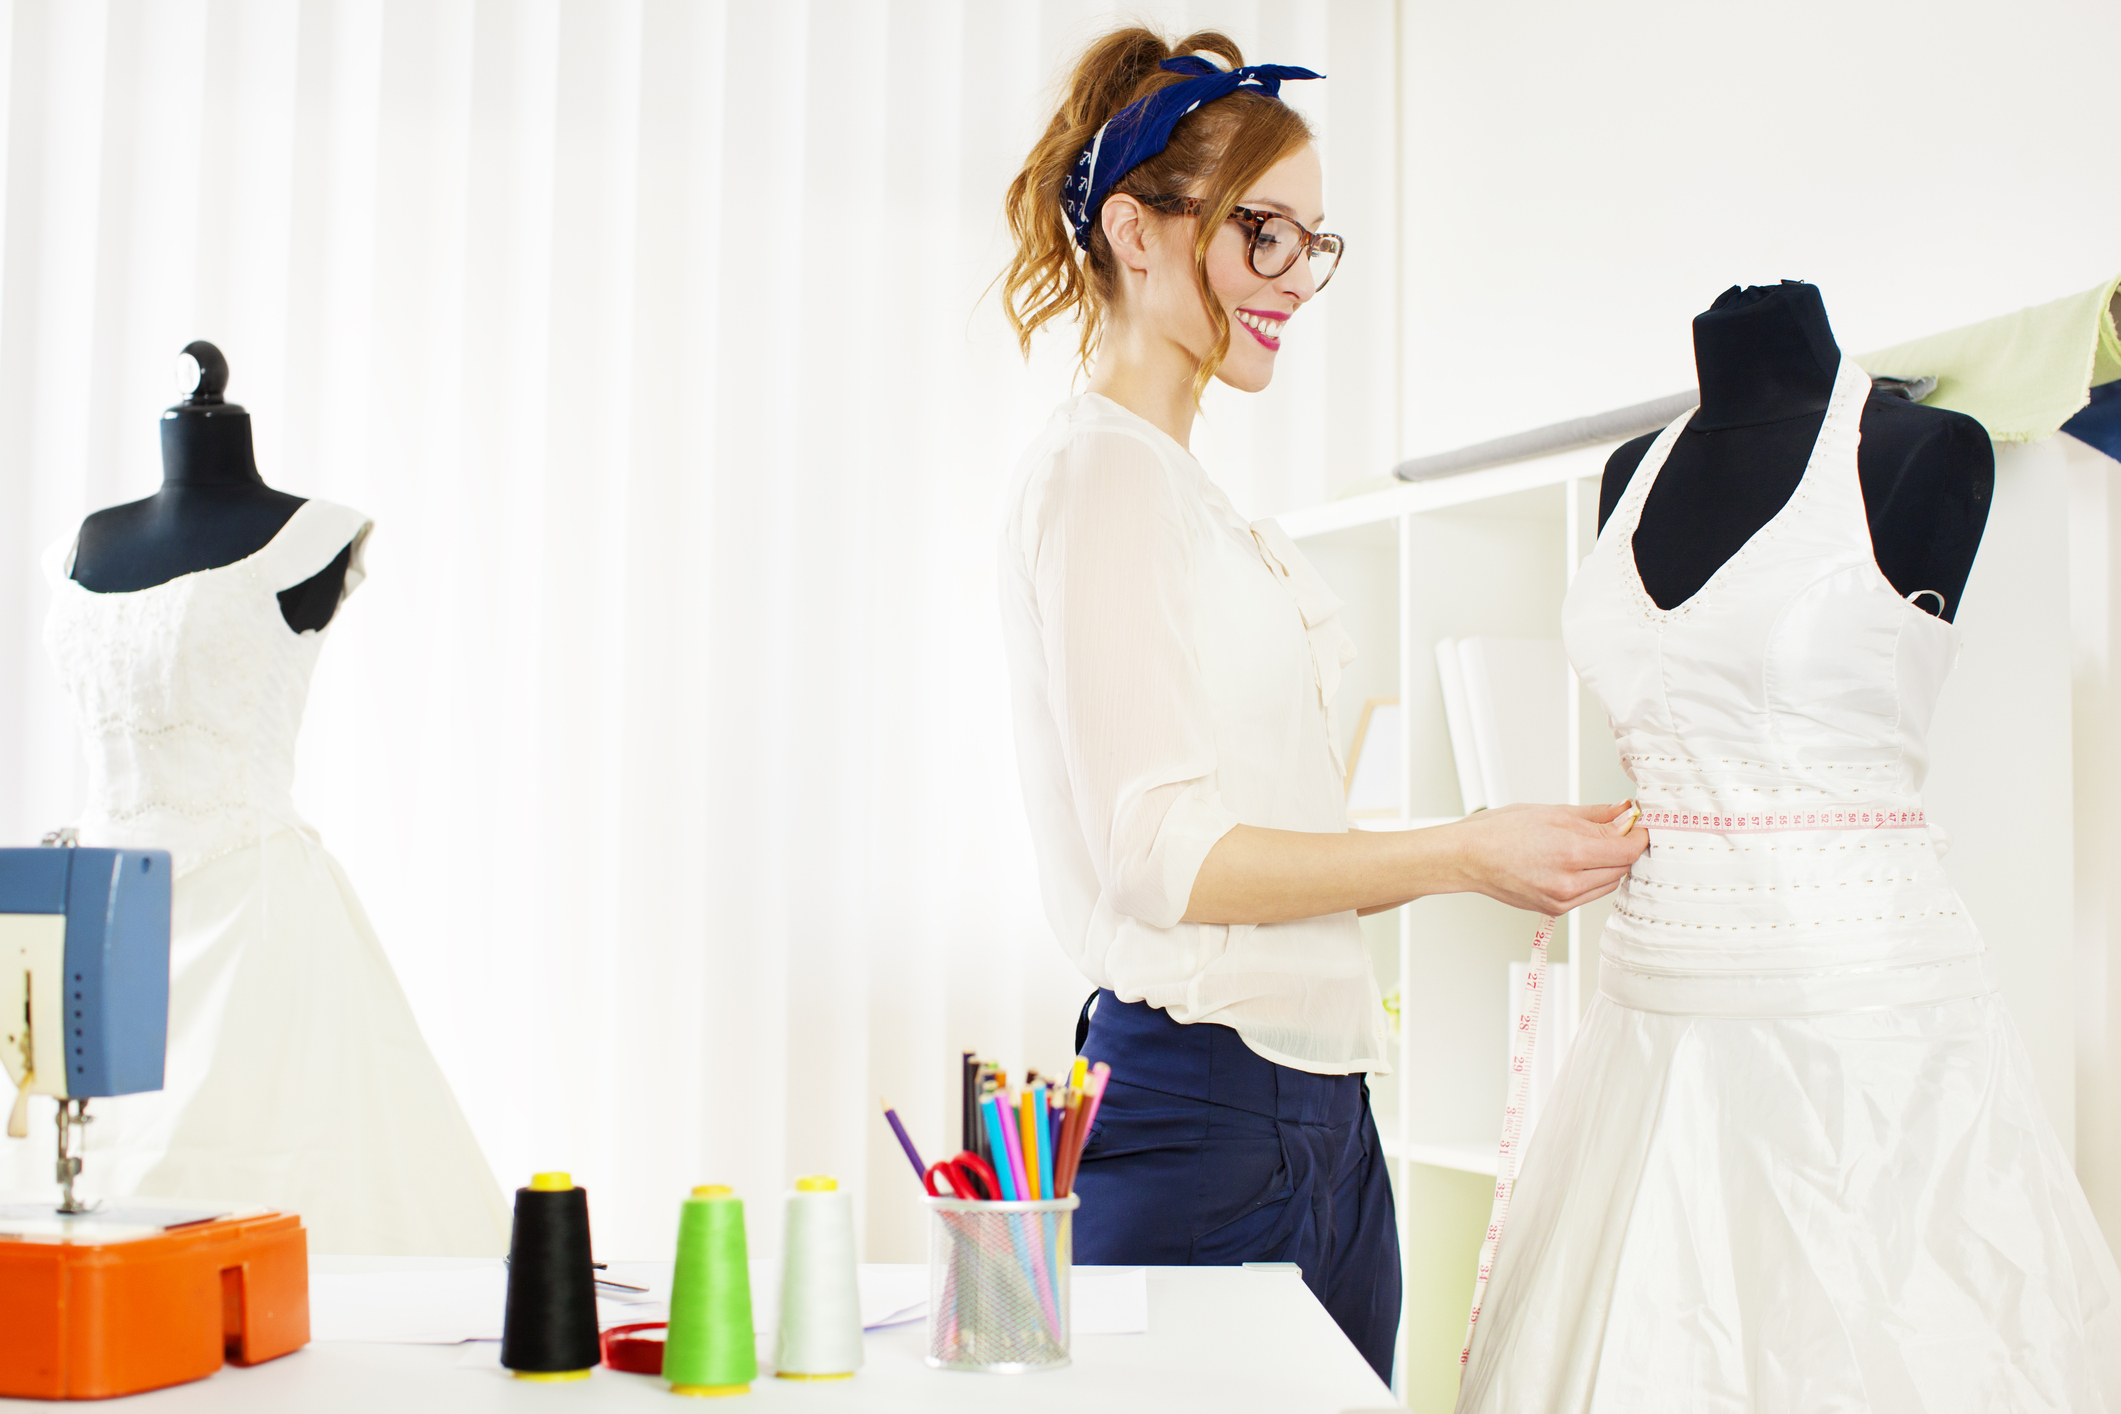 FREE SEWING PATTERNS Design & Make your own clothes.